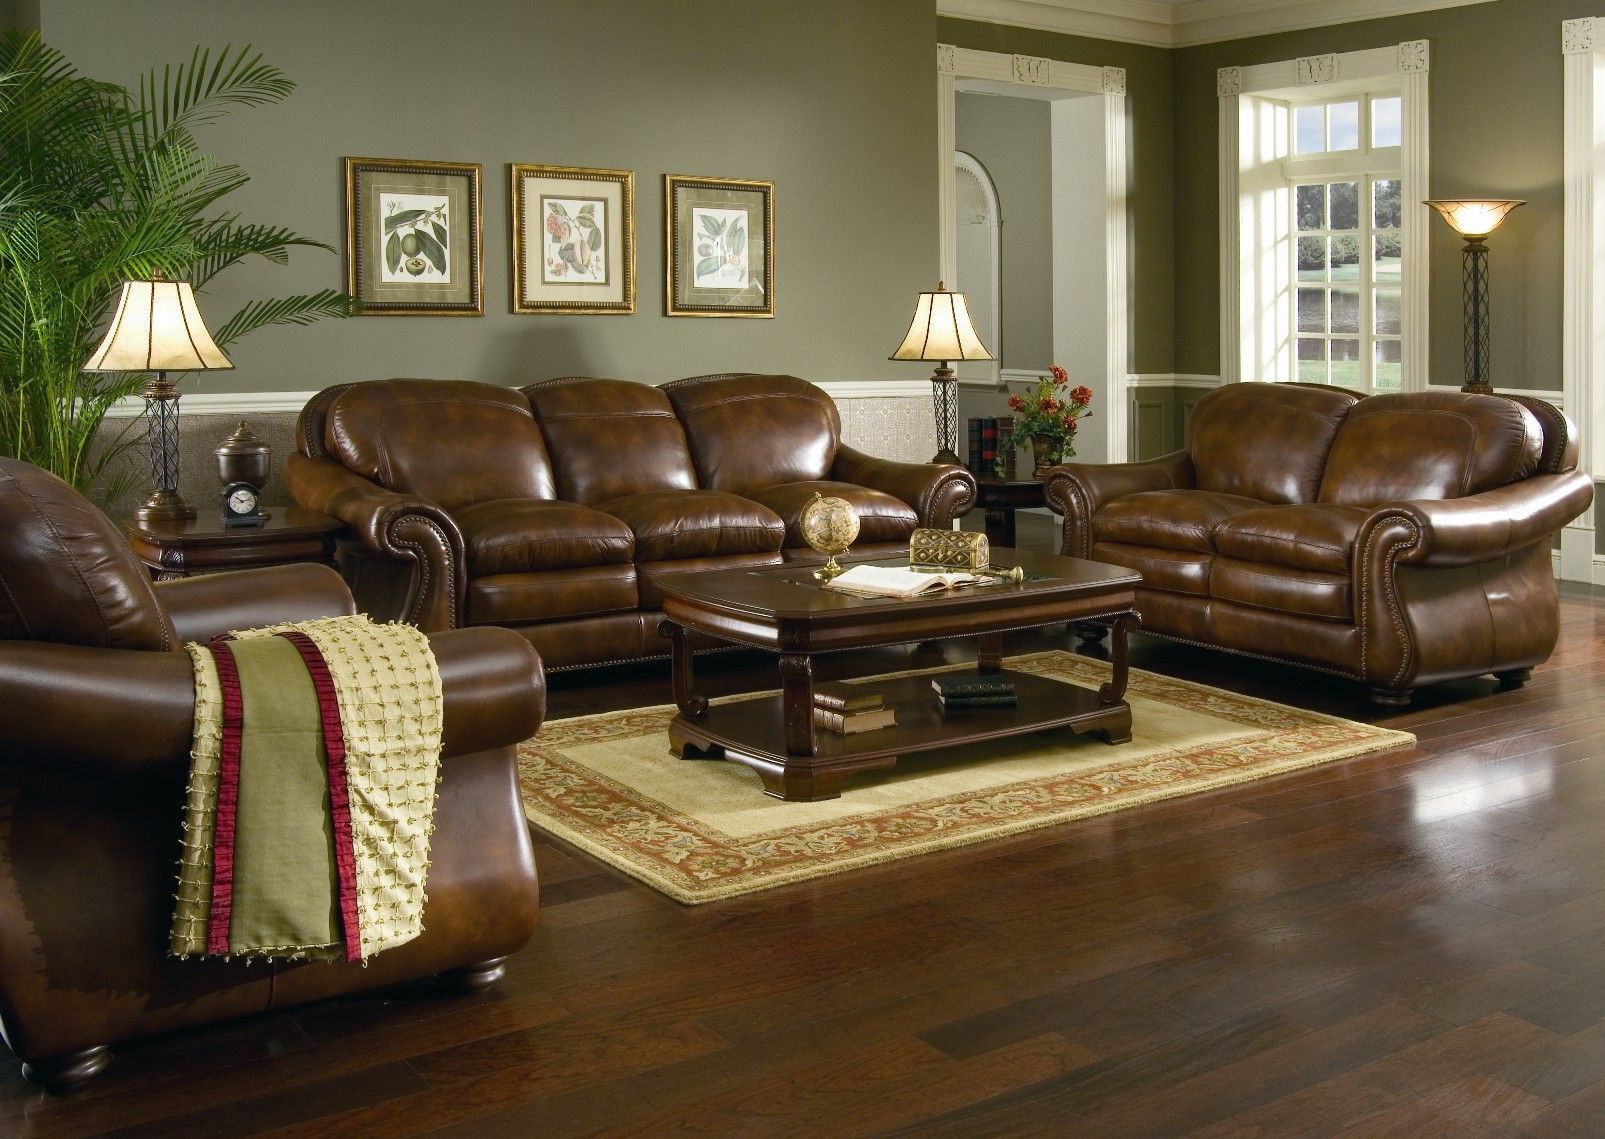 Get 20+ Brown leather furniture ideas on Pinterest without signing ...